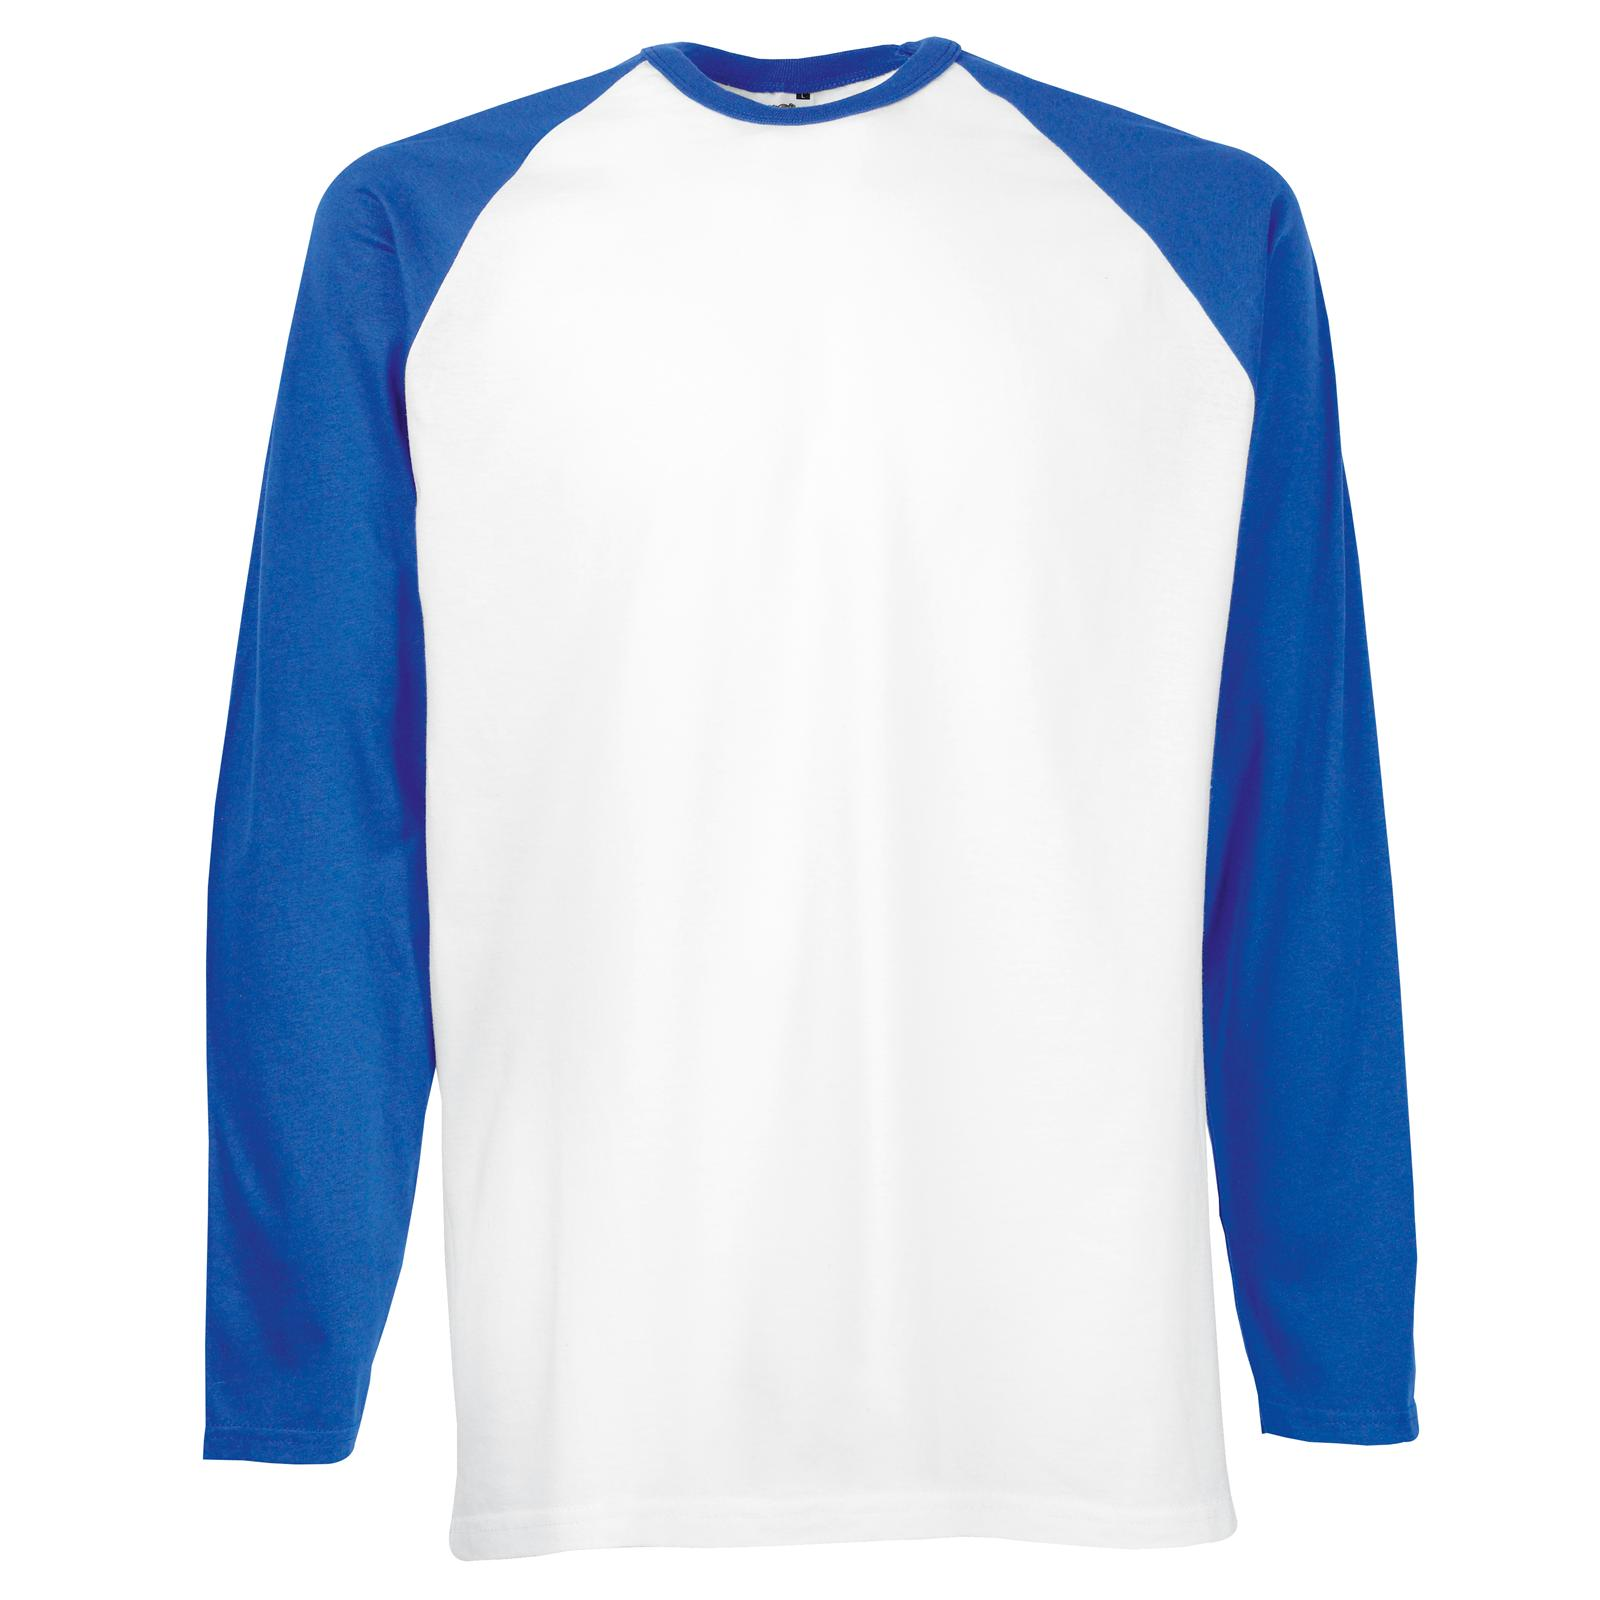 New fruit of the loom mens long sleeve cotton baseball t for Xxl long sleeve t shirts